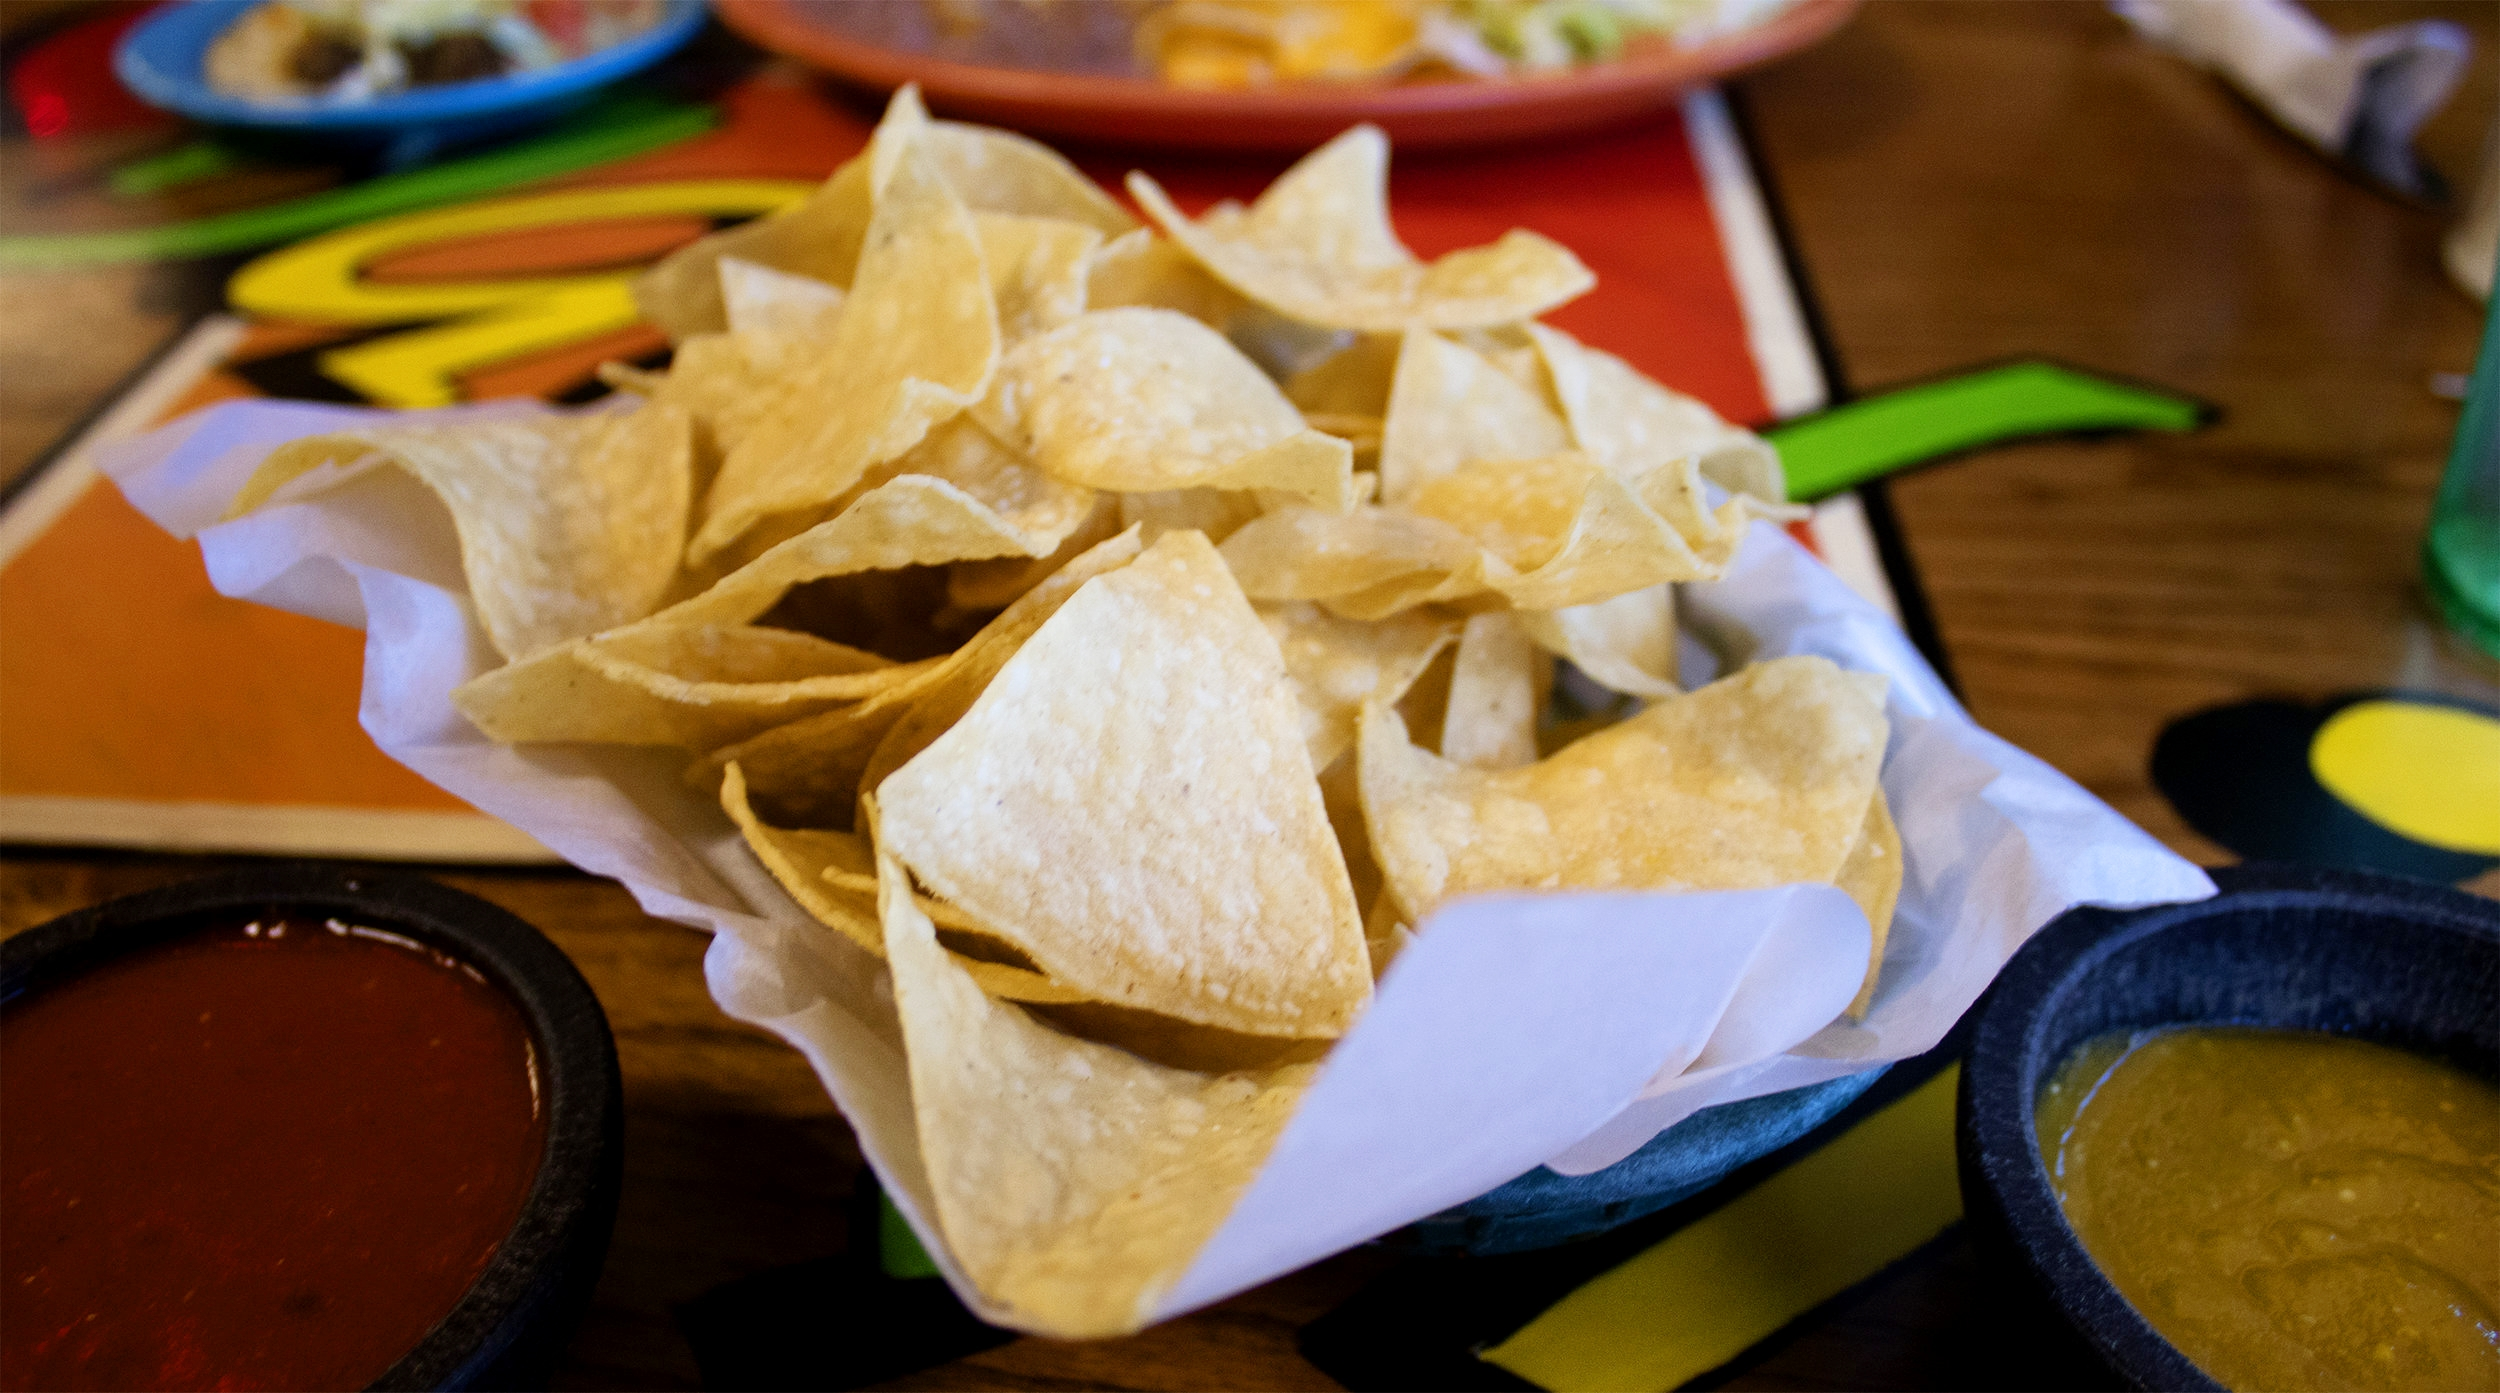 FREE COMPLEMENTARY FIRST BASKET OF OUR HOUSE TOSTADA CHIPS WITH RED AND GREEN SALSA